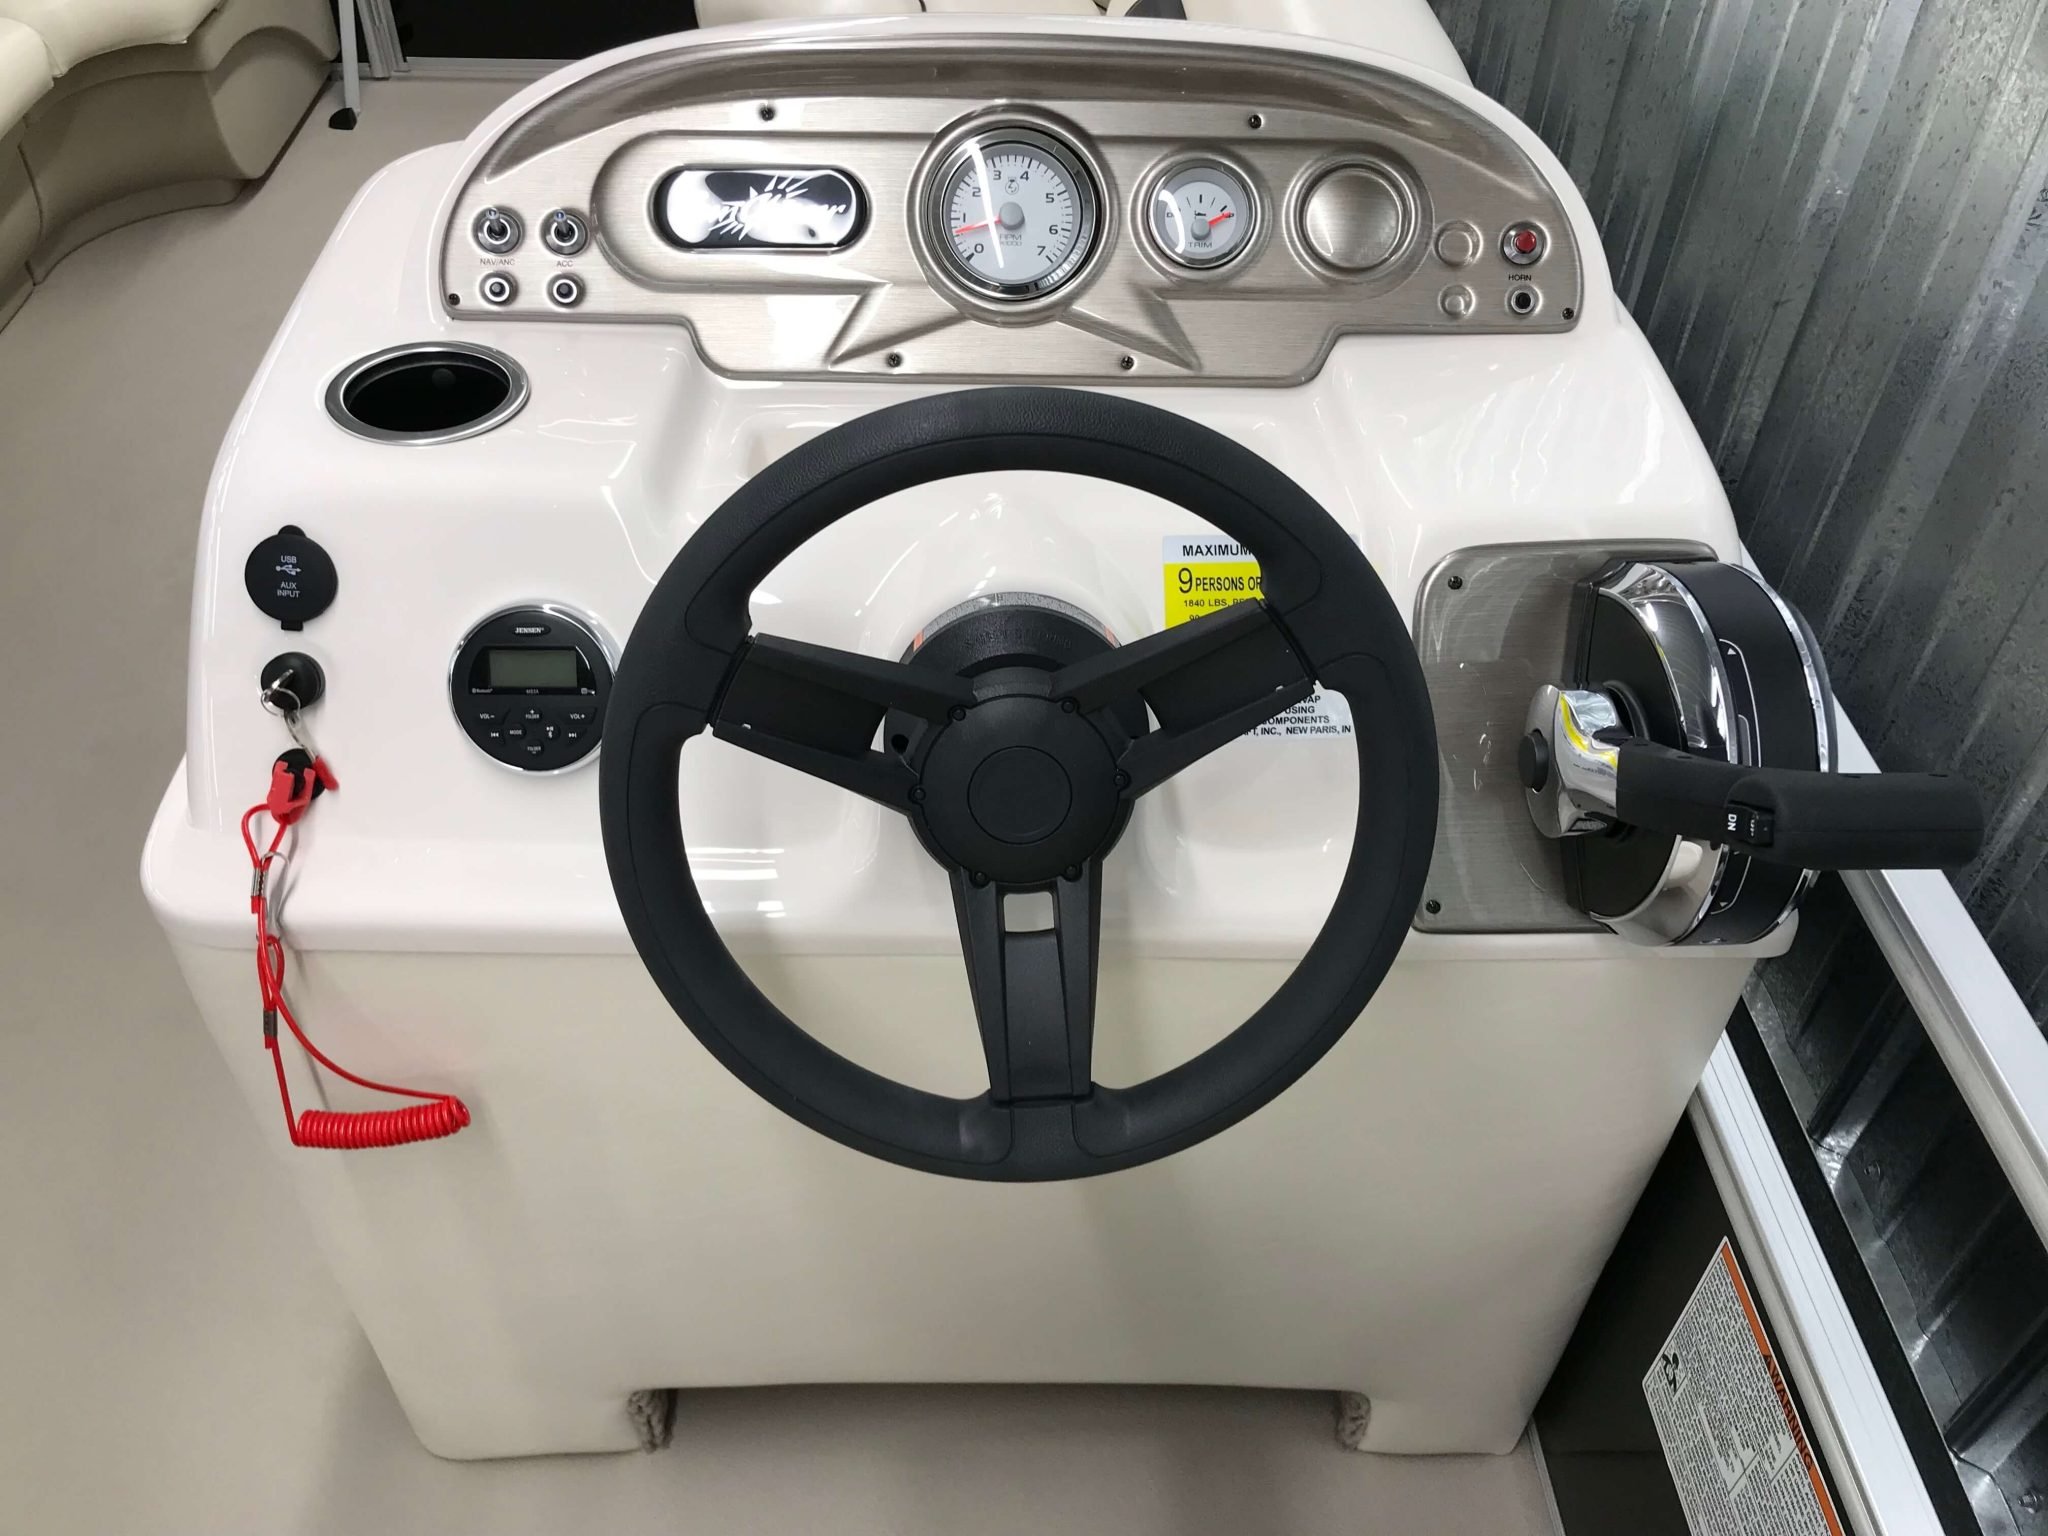 2019 SunChaser Oasis 820 Cruise Helm And Dash